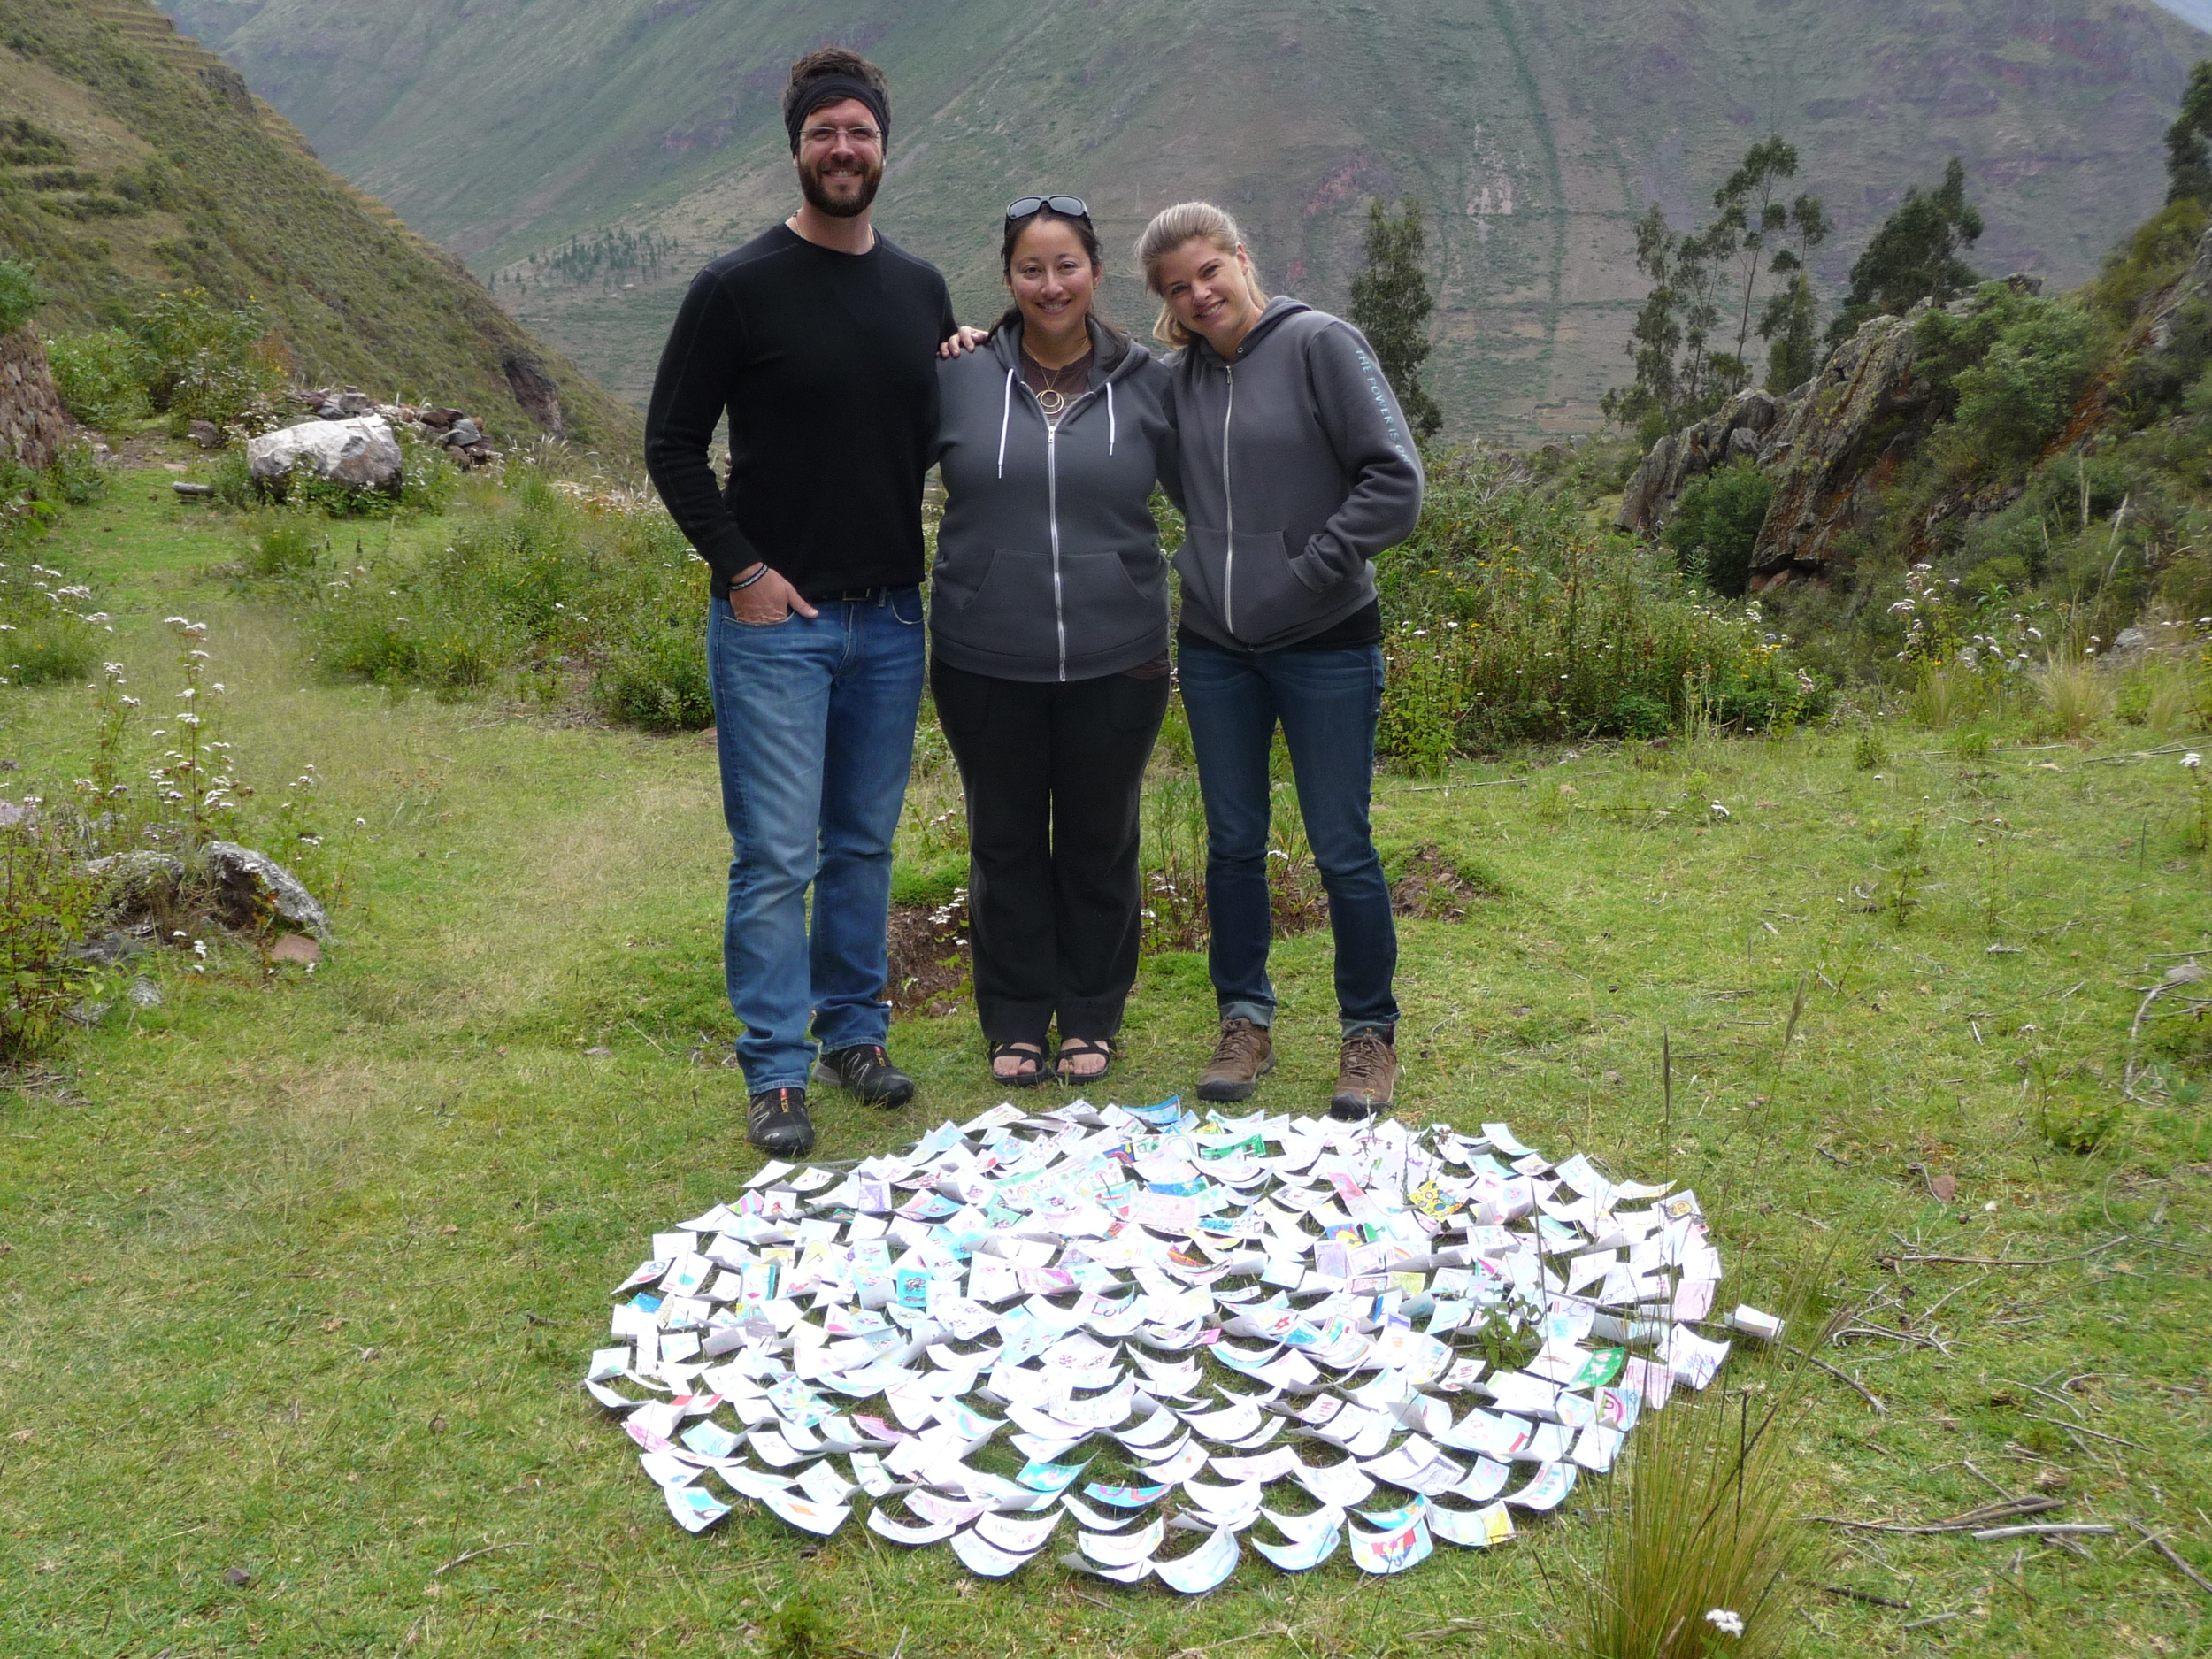 Dr. Austin Komarek, Dr. Alejandra Robles, and Dr. Rhea Zimmerman on set in Peru.